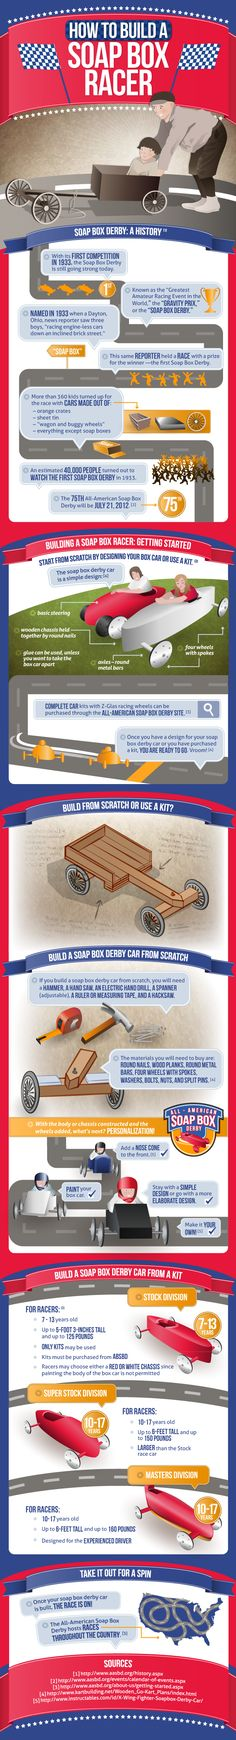 With it's first competition in 1933, the Soap Box derby is still going strong today. Seventy-five years later the events are still going strong. The Soap Box car designs have changed over the past few decades but the concept behind the car has stayed the same. Below we will look at the various designs, and the history of Soap Box racing.